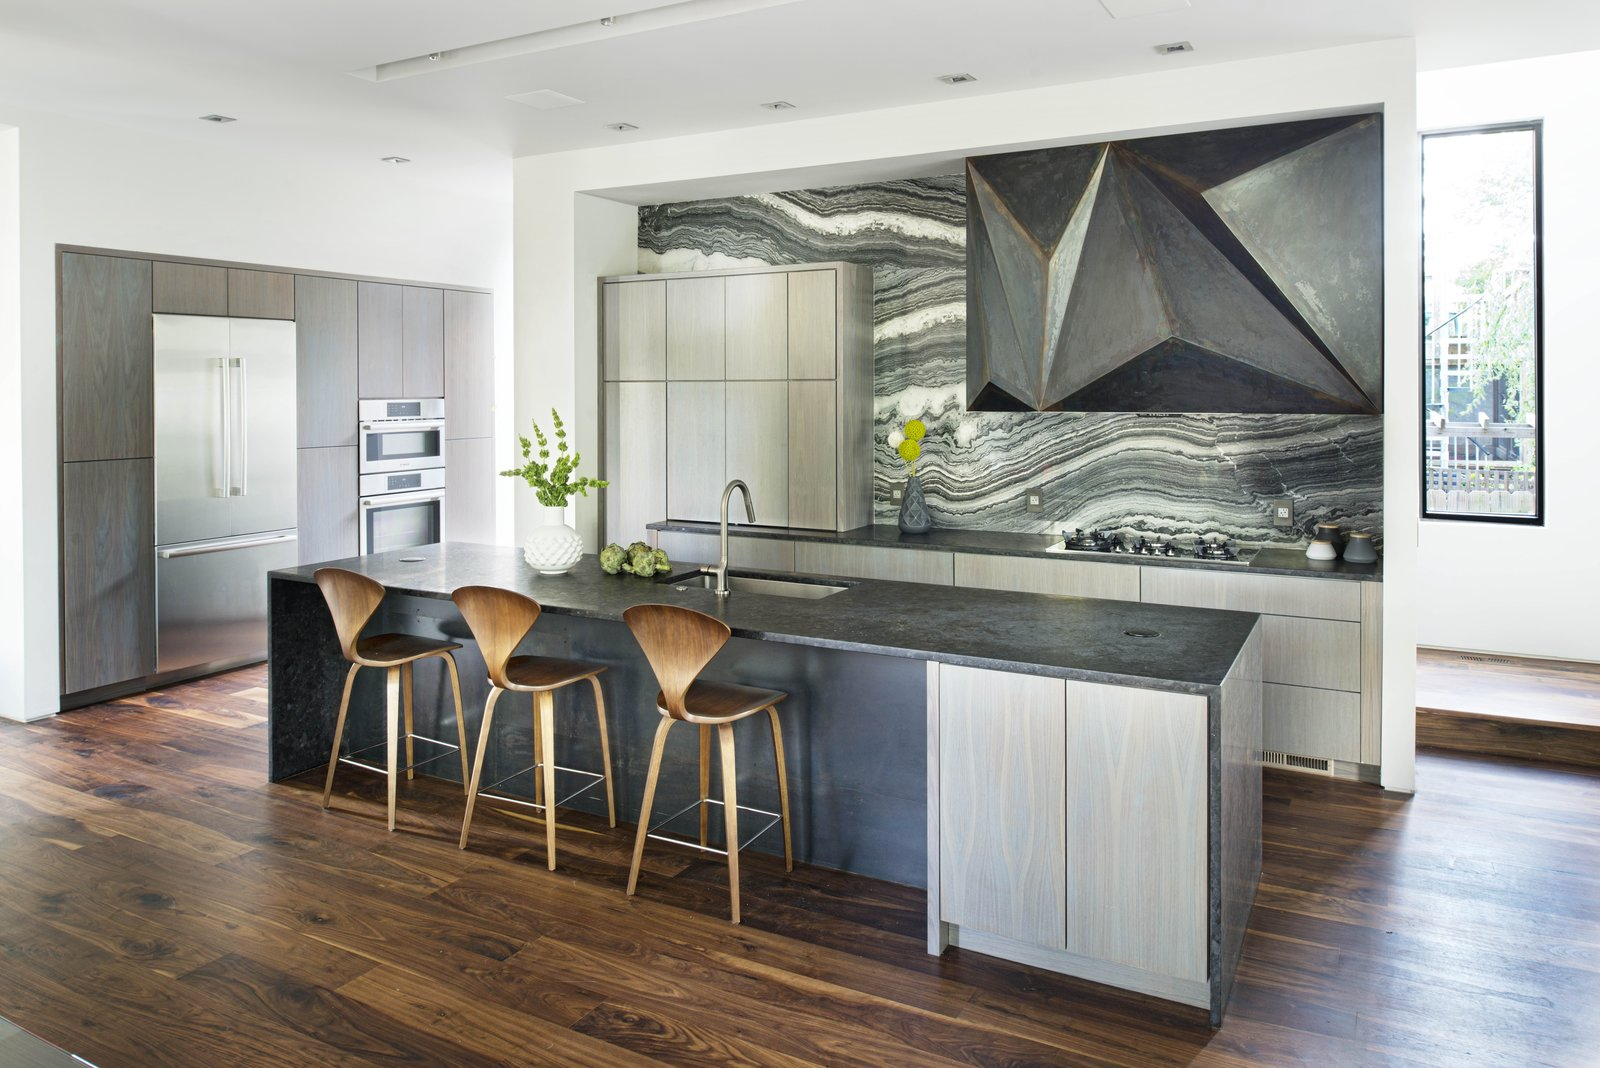 Custom steel vent hood designed by West Architecture Studio and fabricated by Luke Prestridge. Tagged: Kitchen, Recessed Lighting, Wood Cabinet, Refrigerator, Wall Oven, Undermount Sink, Marble Backsplashe, and Range. Alaska House by West Architecture Studio